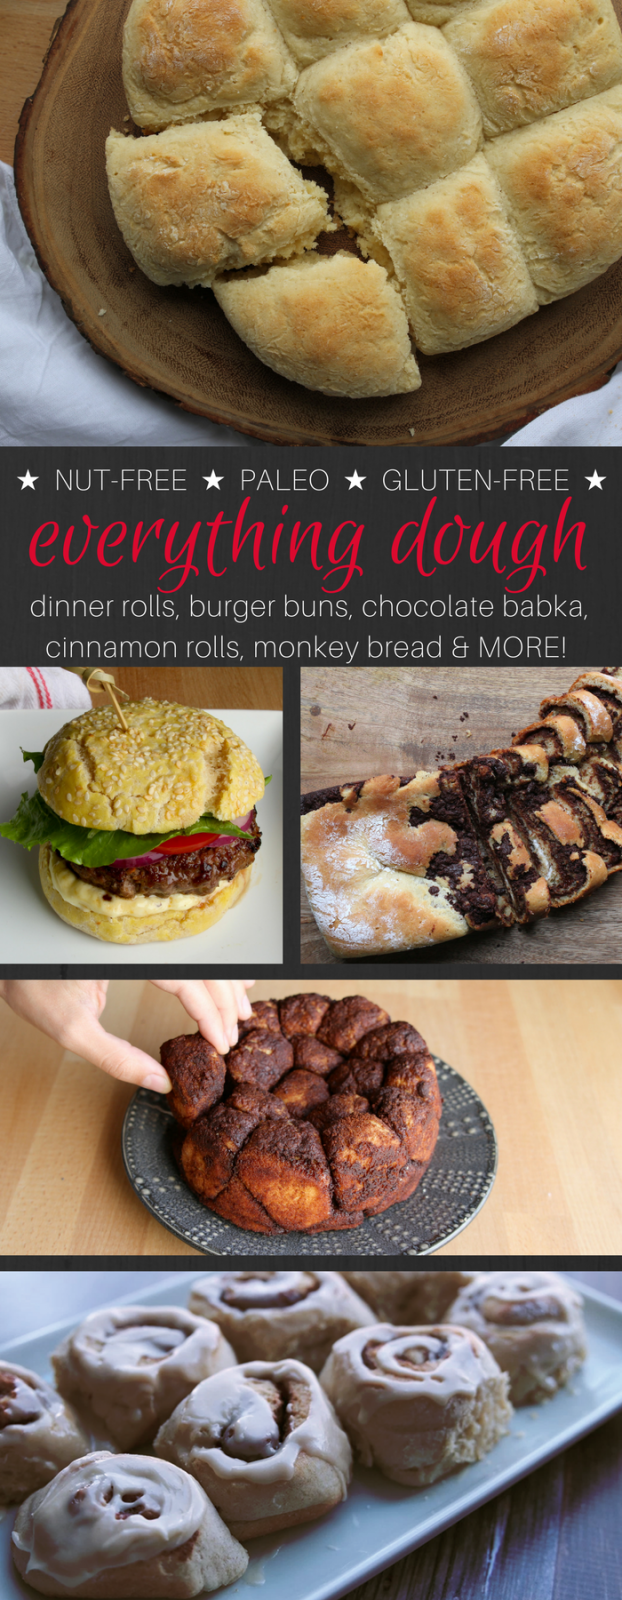 paleo everything dough